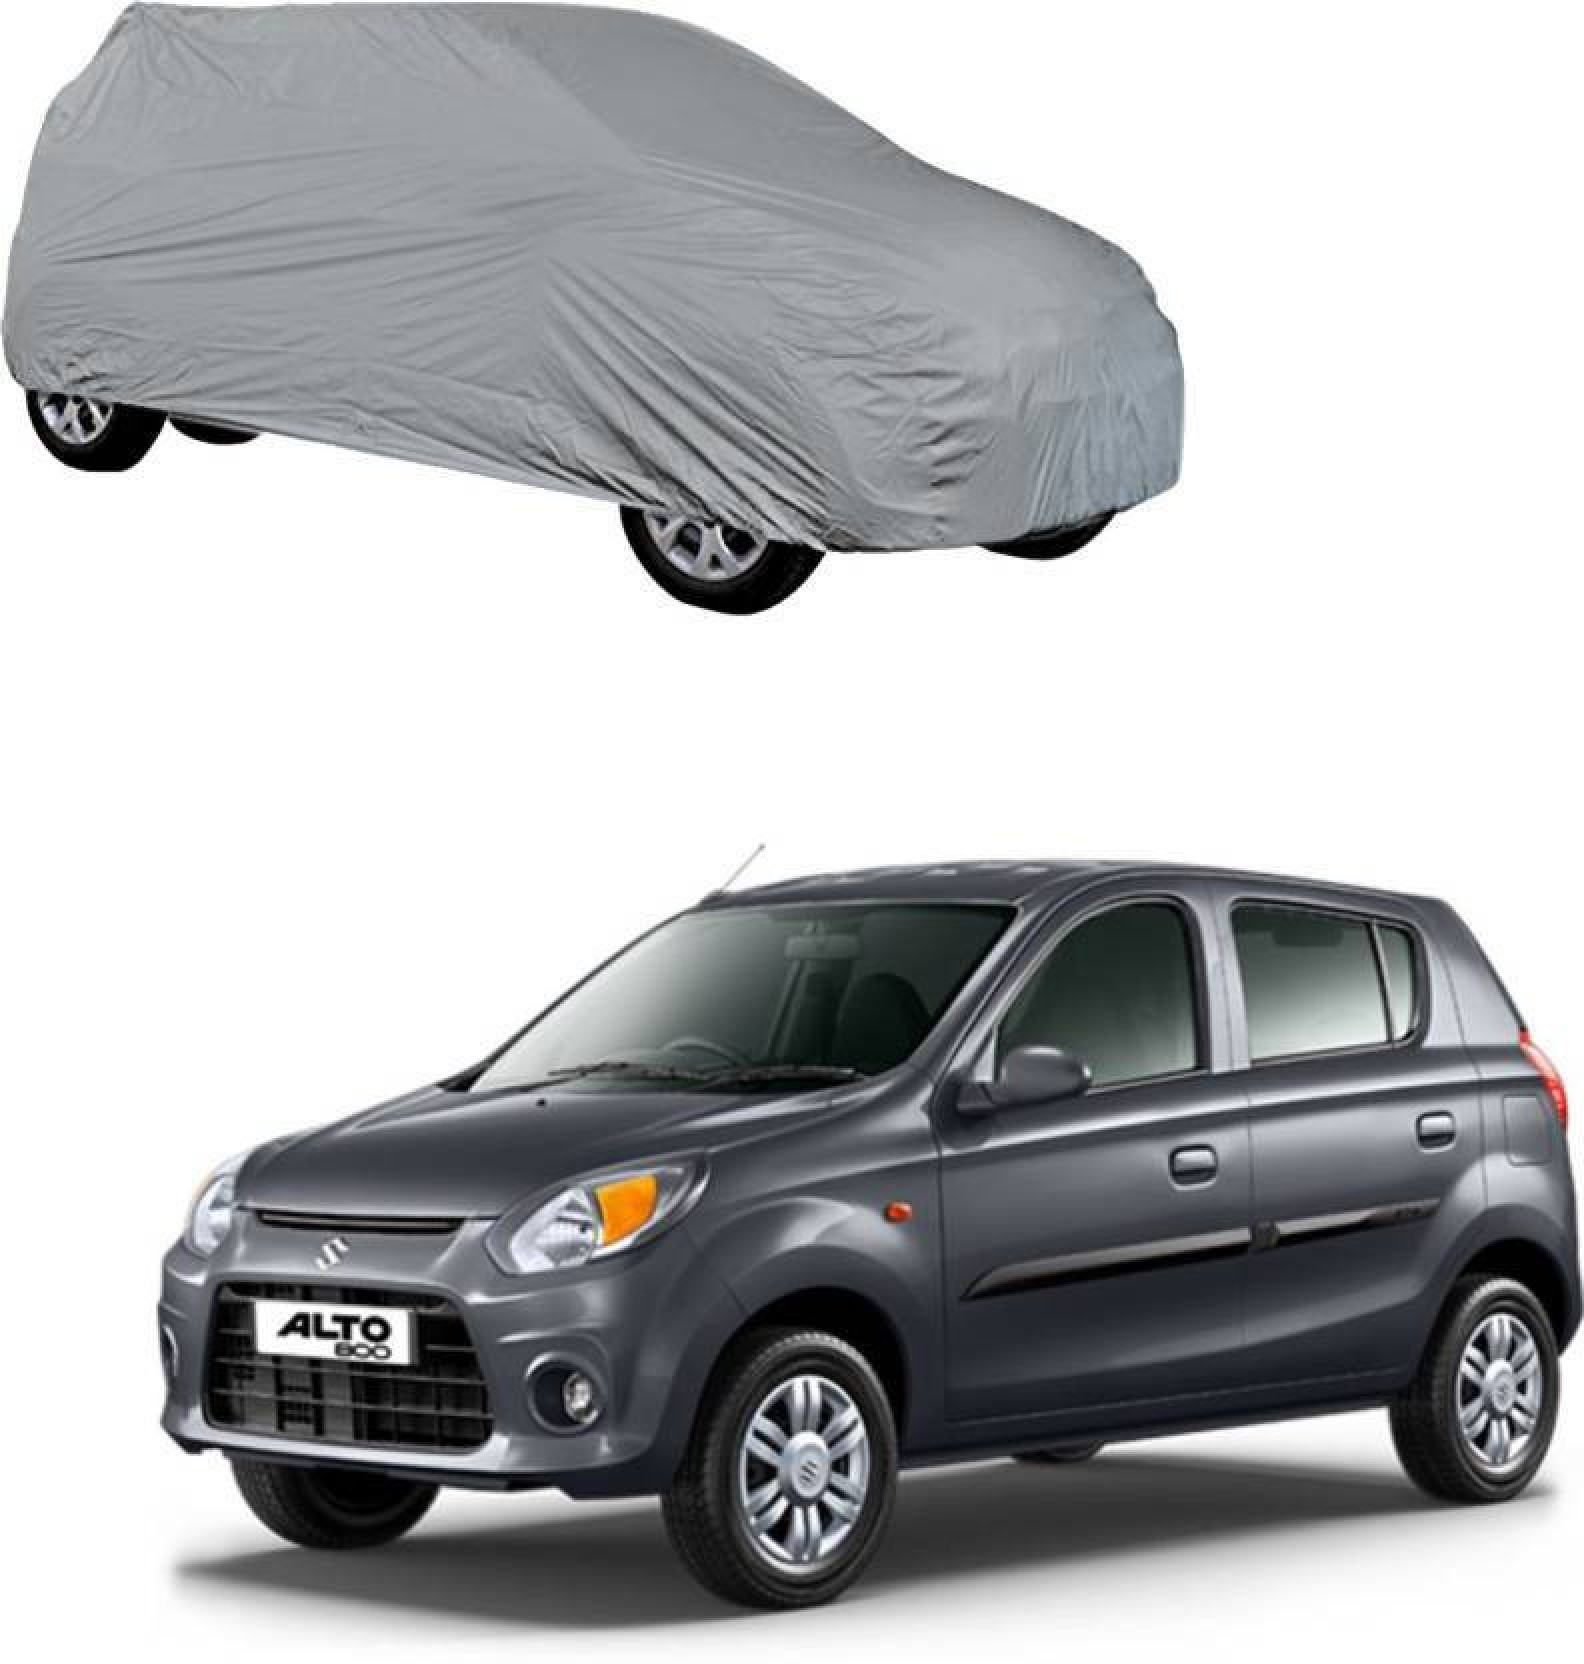 Markslow car cover for maruti suzuki alto alto 800 zen estilo without mirror pockets silver for 2018 2017 models